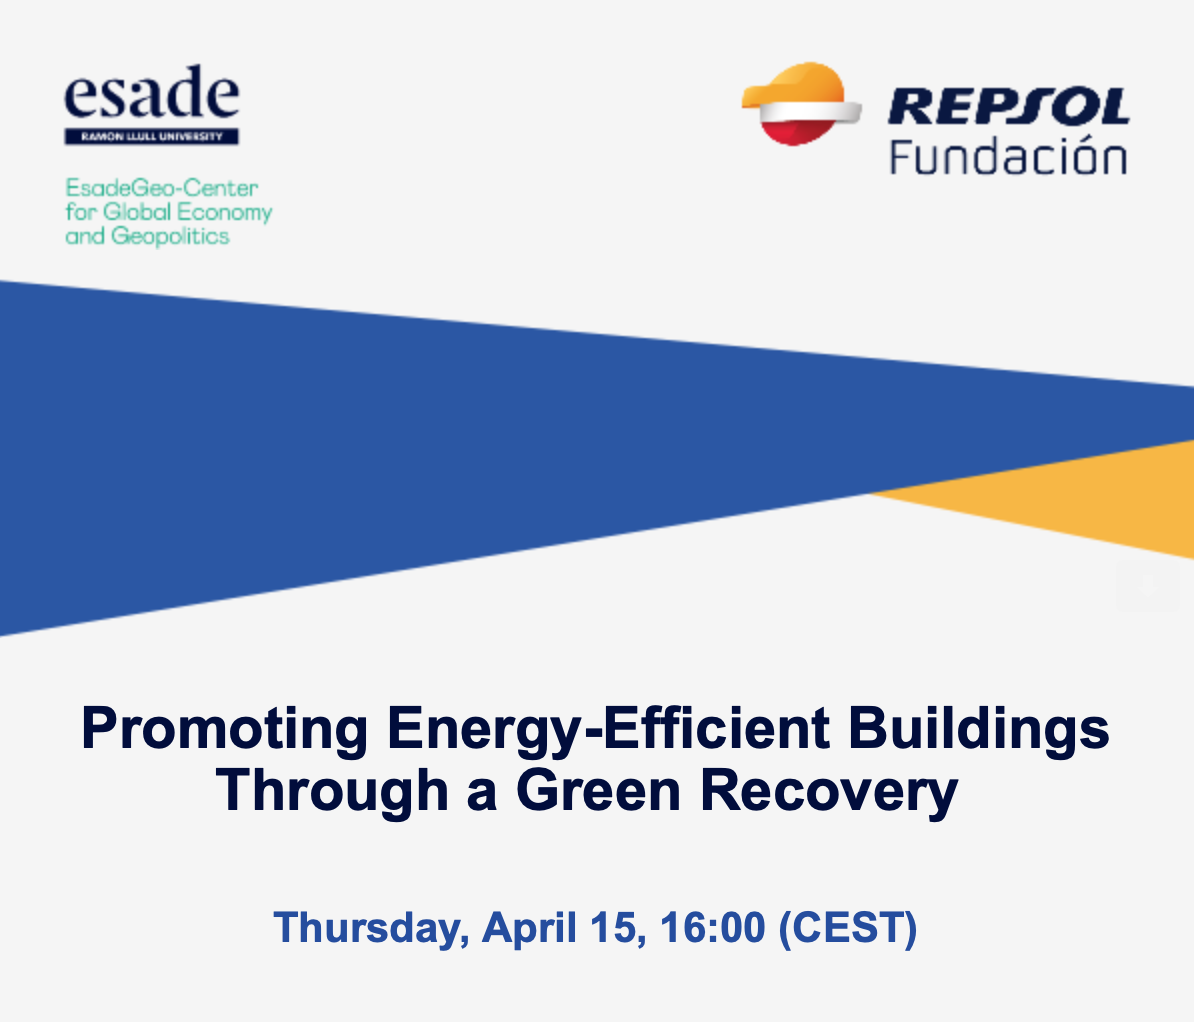 Promoting Energy-Efficient Buildings Through a Green Recovery